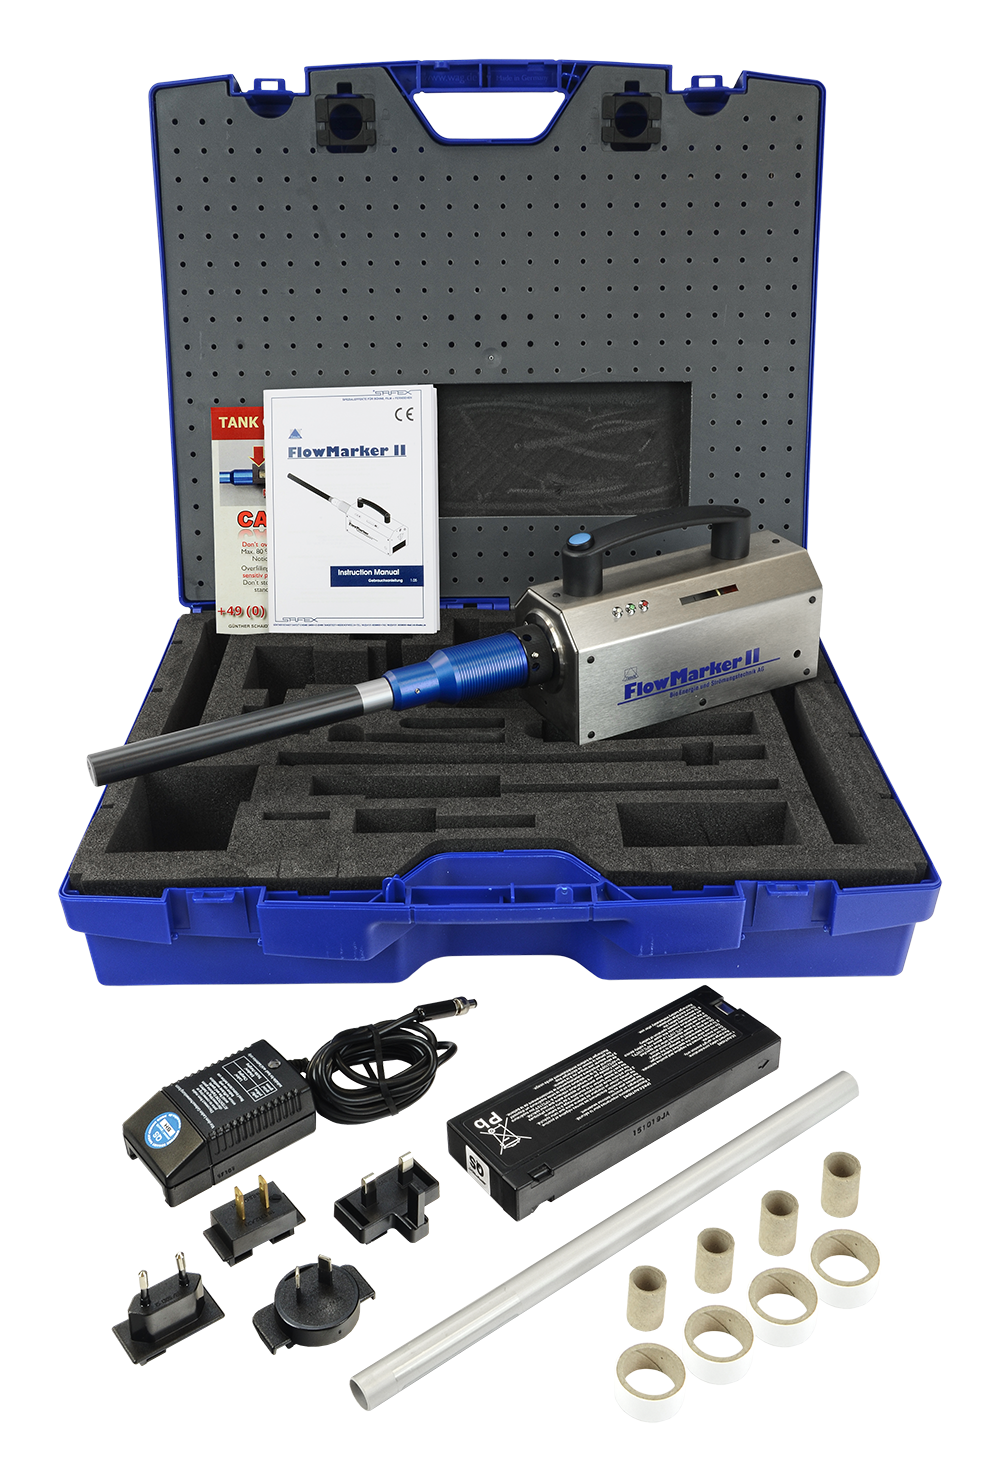 FlowMarker smoke generator wand kit with everything you need to get started with smoke wand tests.